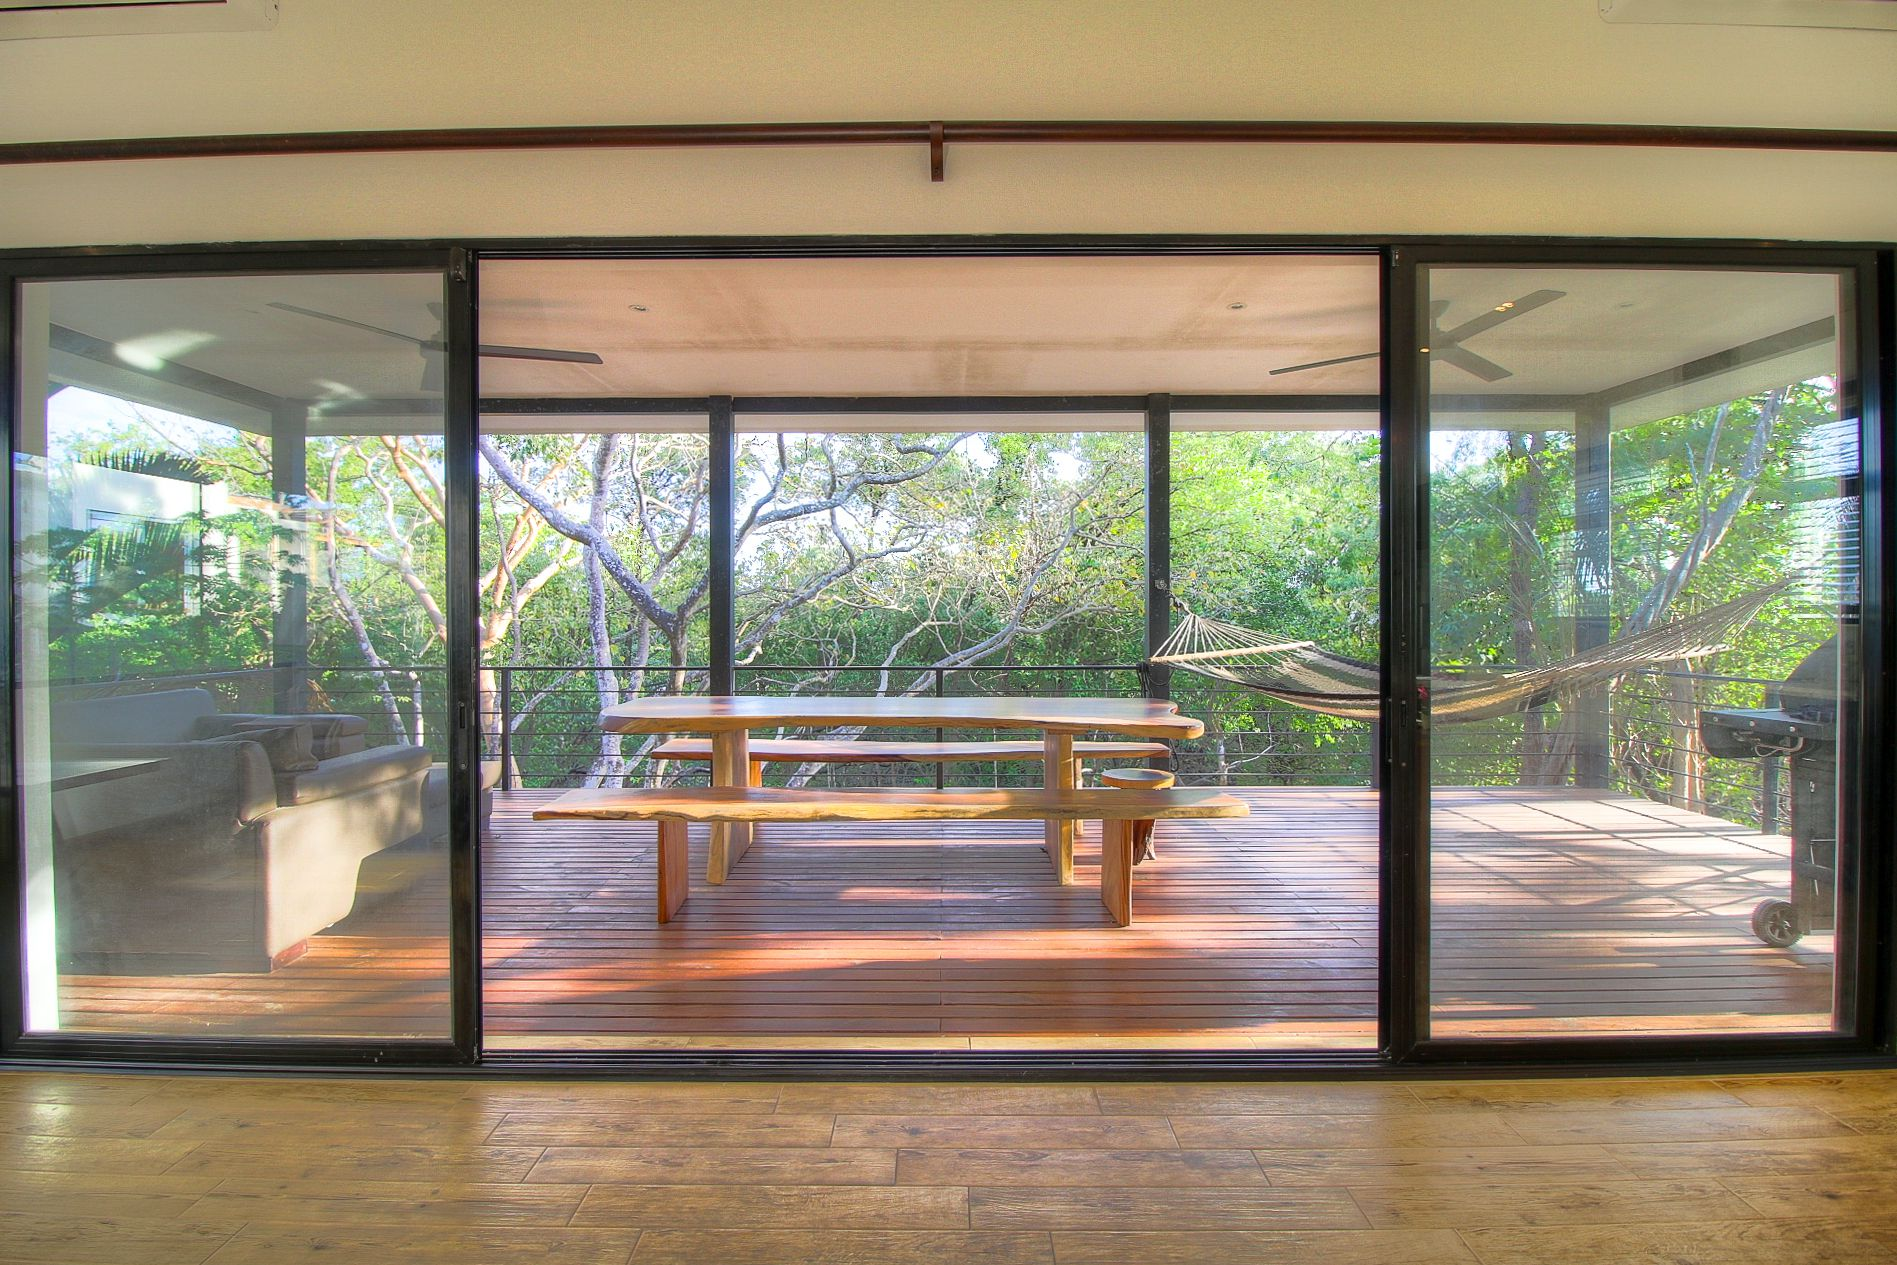 Floor-to-ceiling glass doors and windows